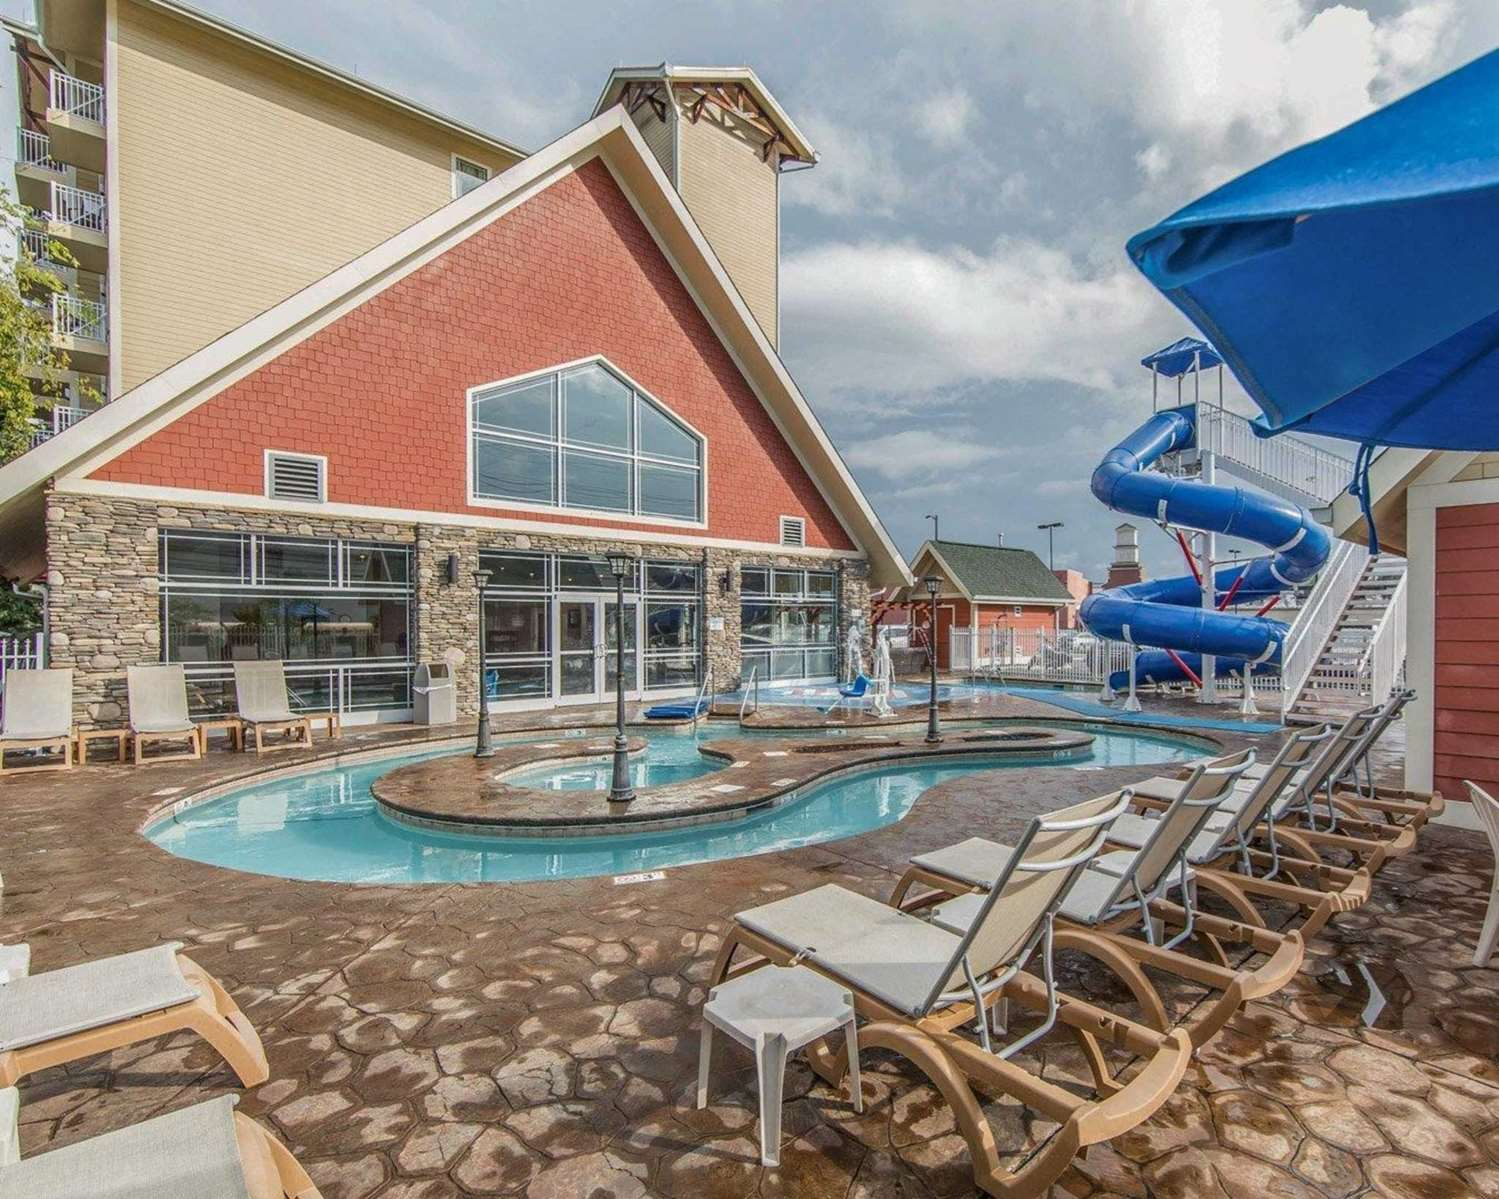 Clarion Hotel Pigeon Forge, TN - See Discounts